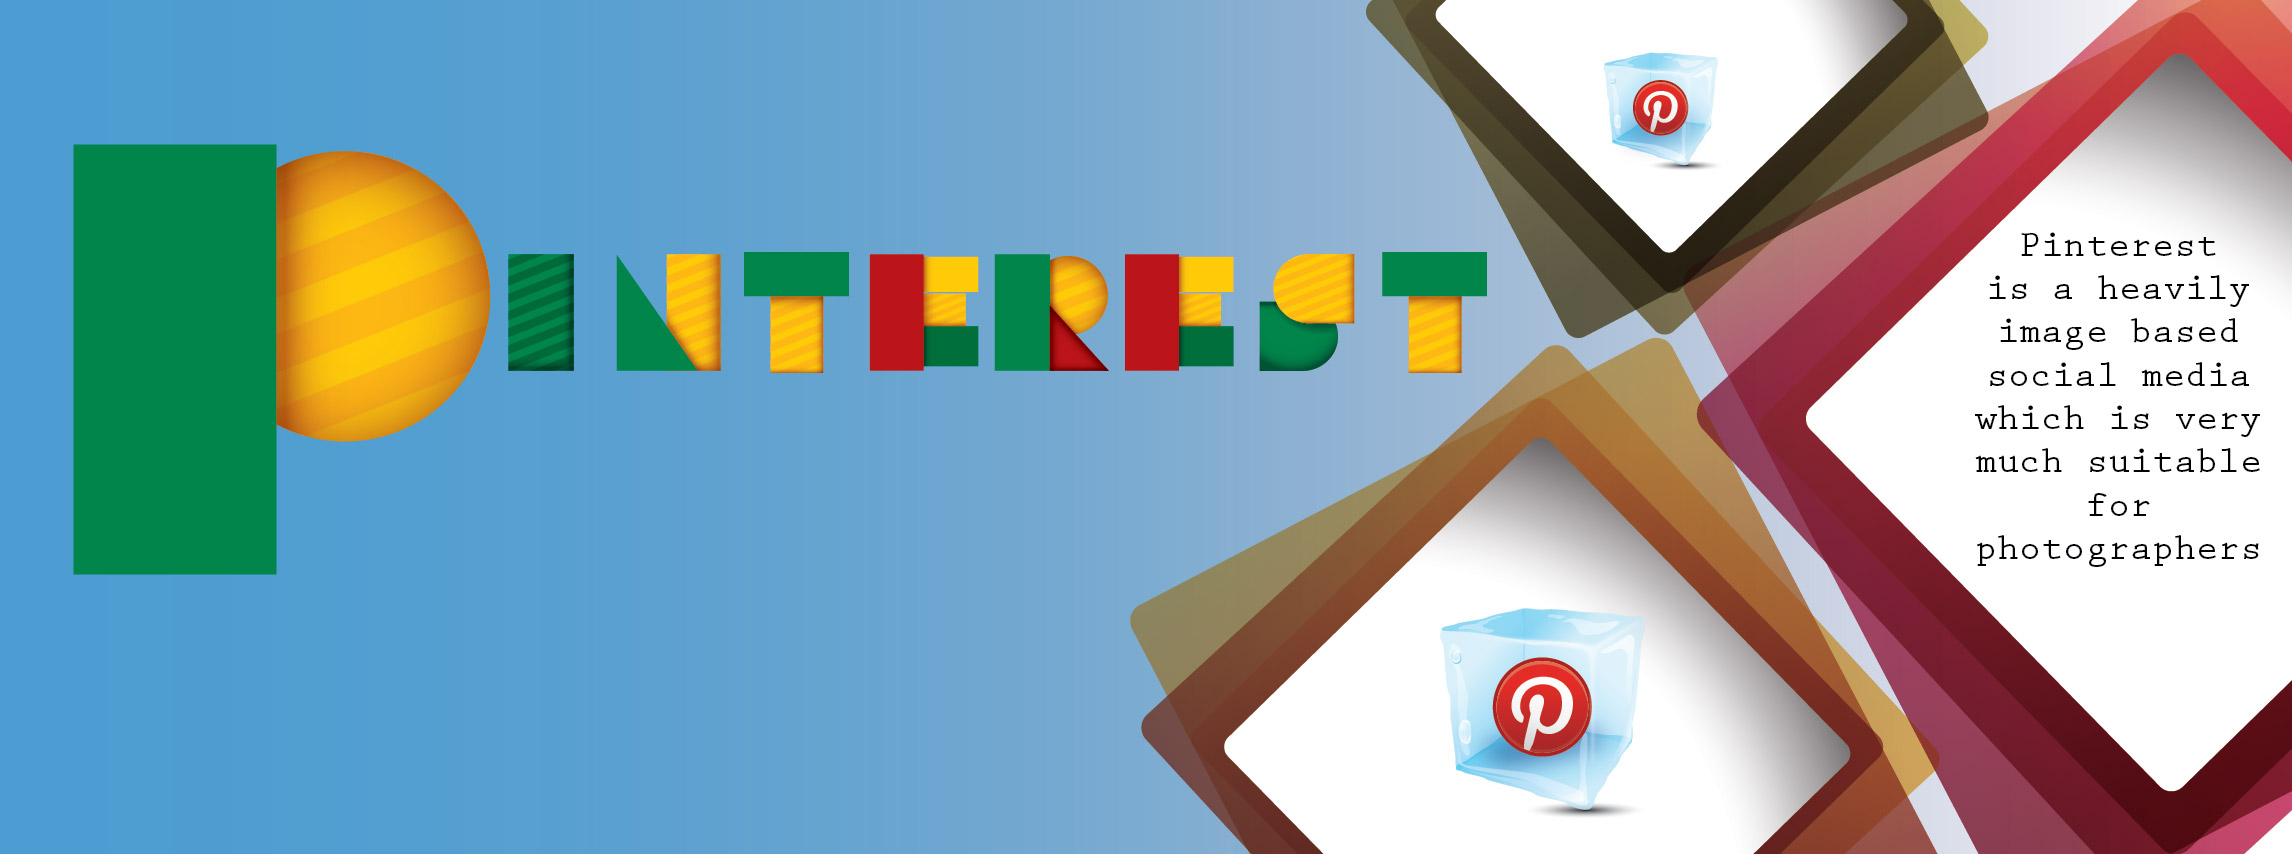 Pinterest Marketing For Photography Business